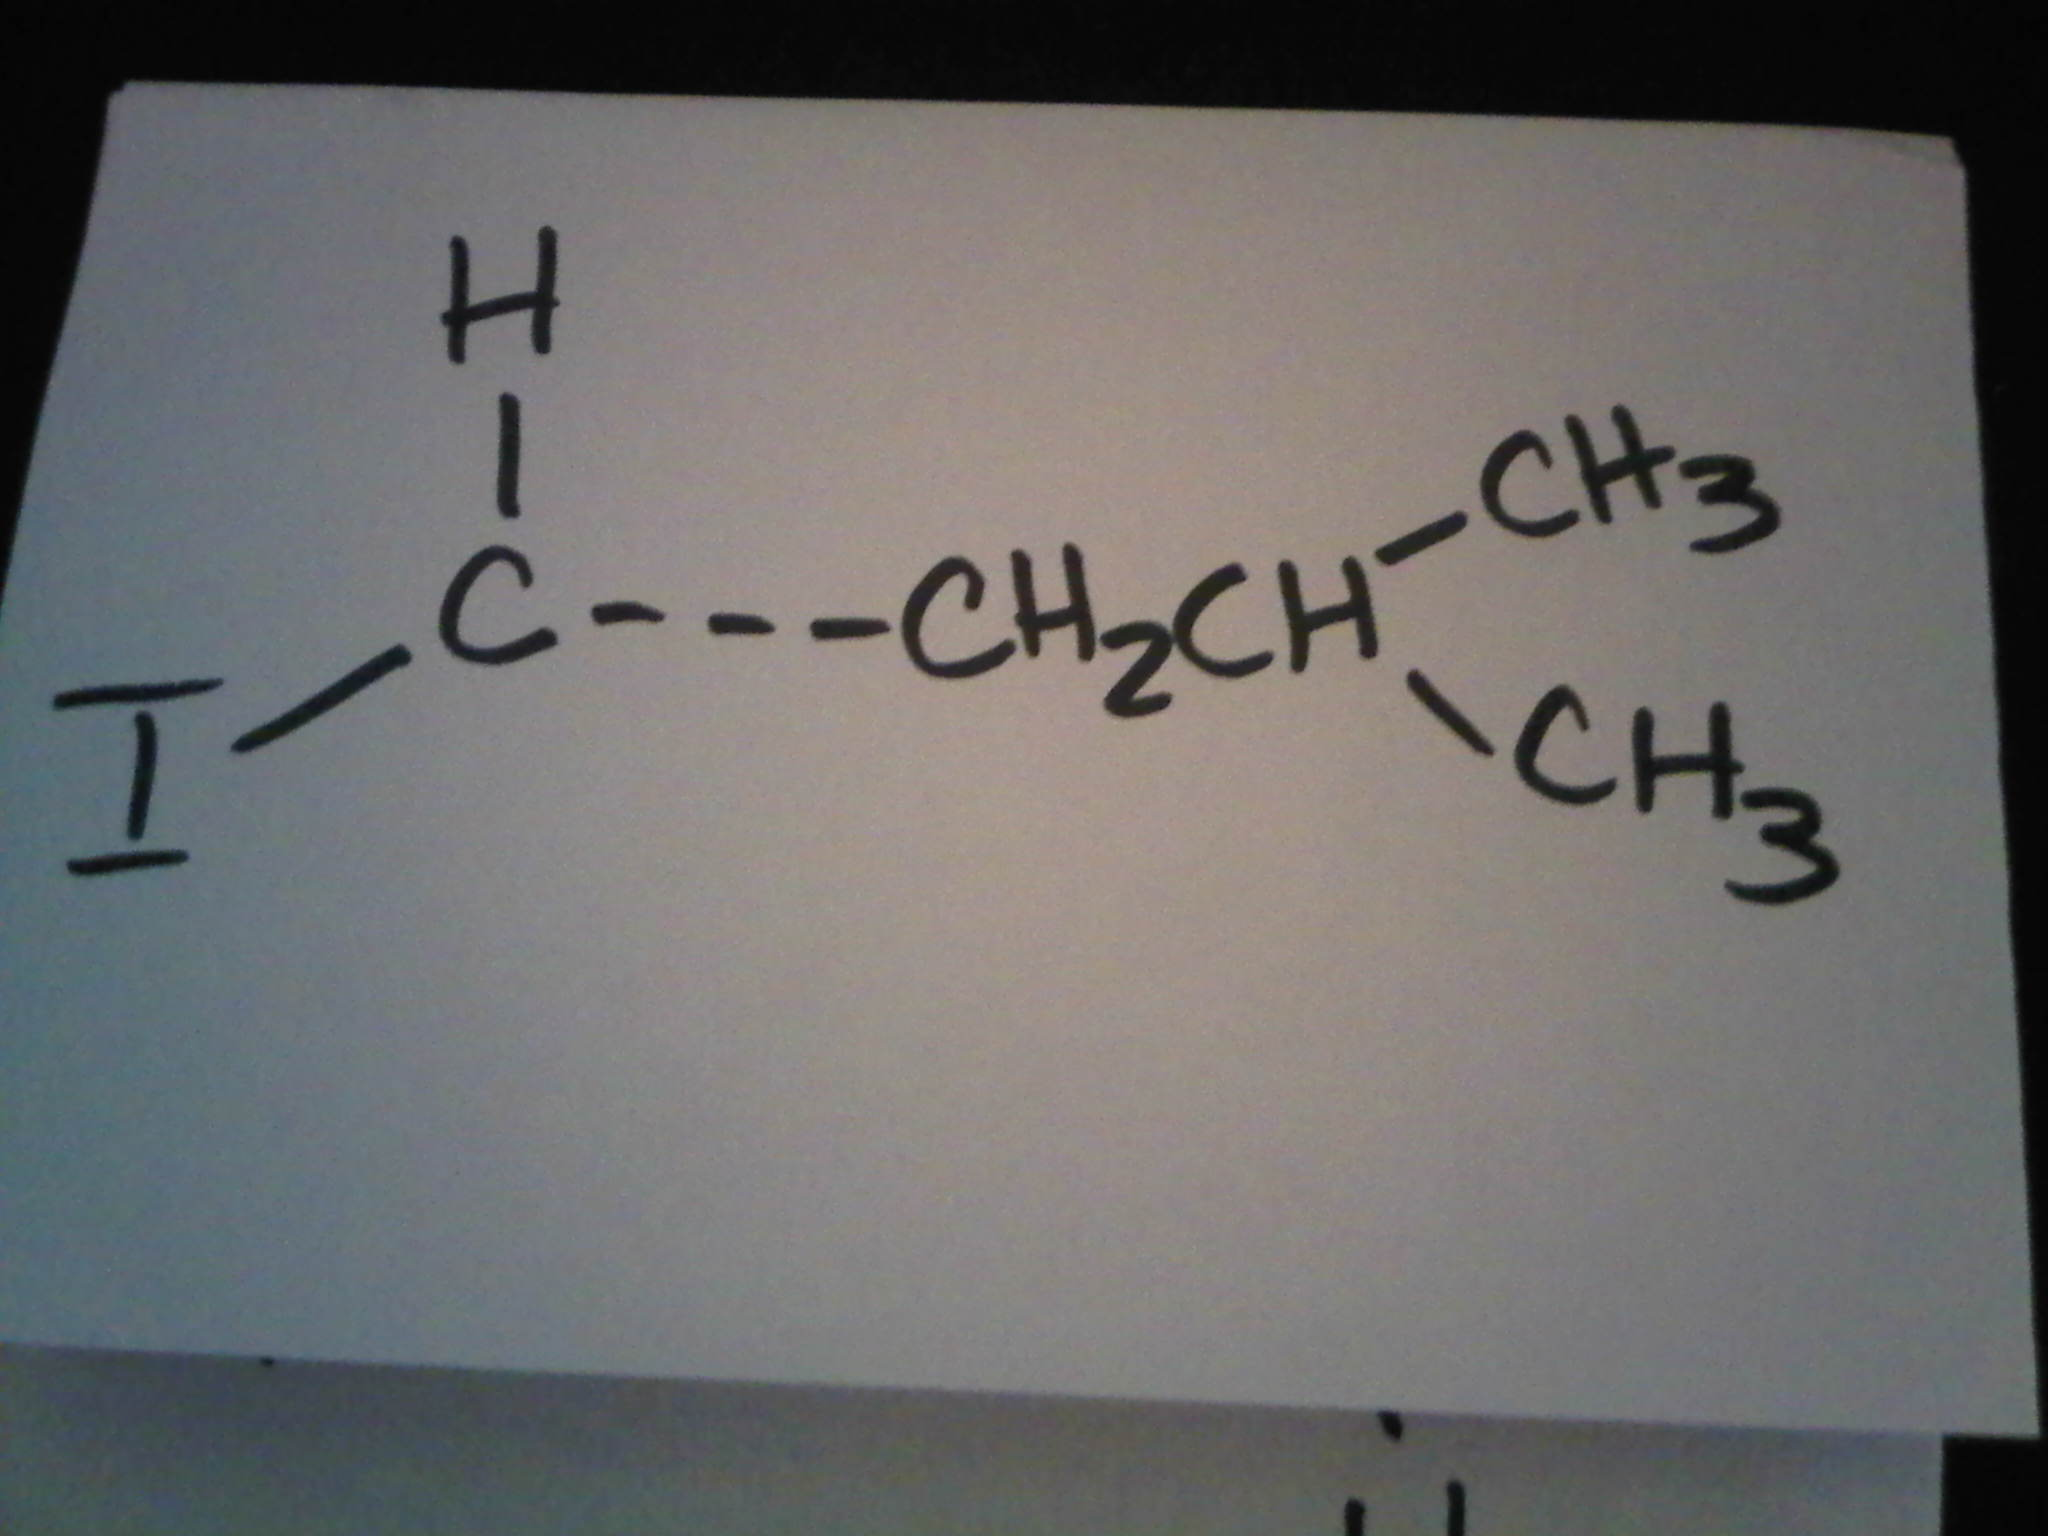 Attached is the compound I need help finding the C